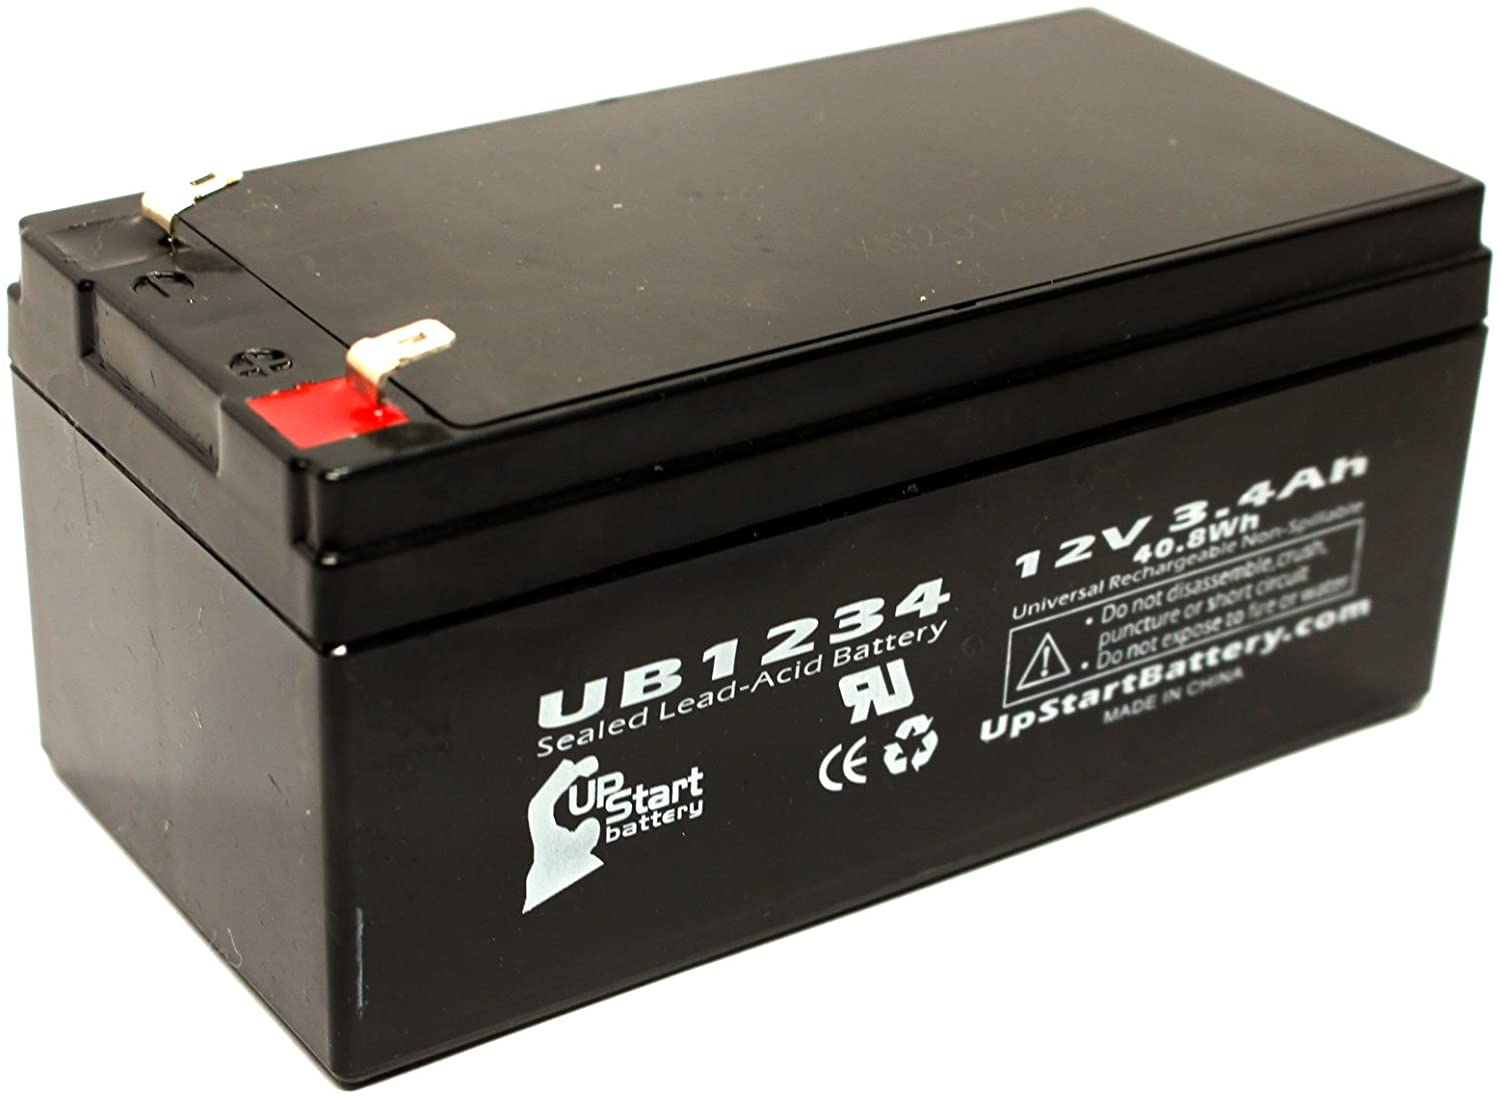 Replacement for Conext CNB325 Battery - Replacement UB1234 Universal Sealed Lead Acid Battery (12V, 3.4Ah, 3400mAh, F1 Terminal, AGM, SLA) - Includes Two F1 to F2 Terminal Adapters